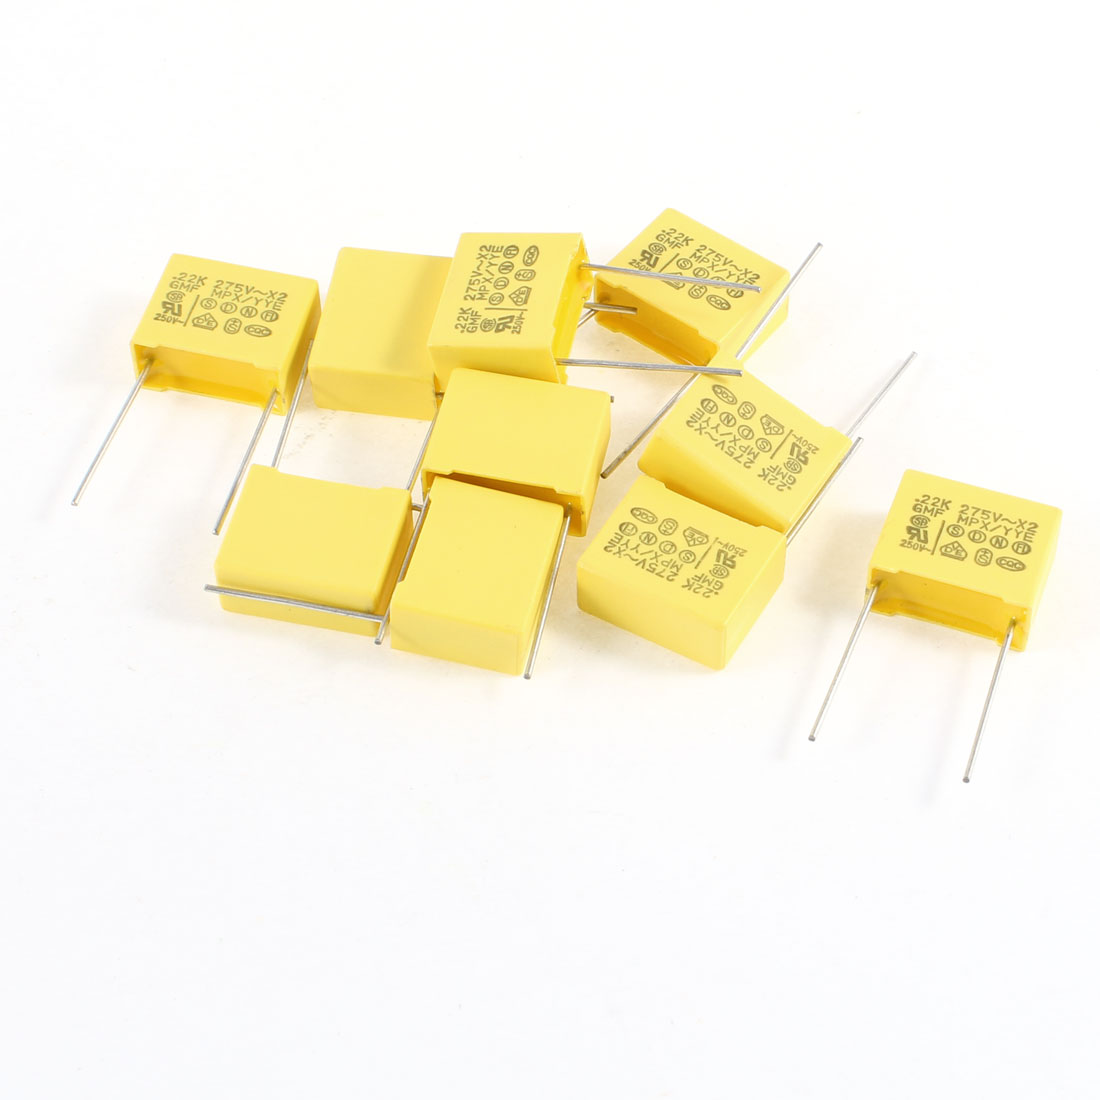 10PCS 275V 0.22uF 10% 2 Terminals Lead Rectangle Polyester Film Capacitor Yellow